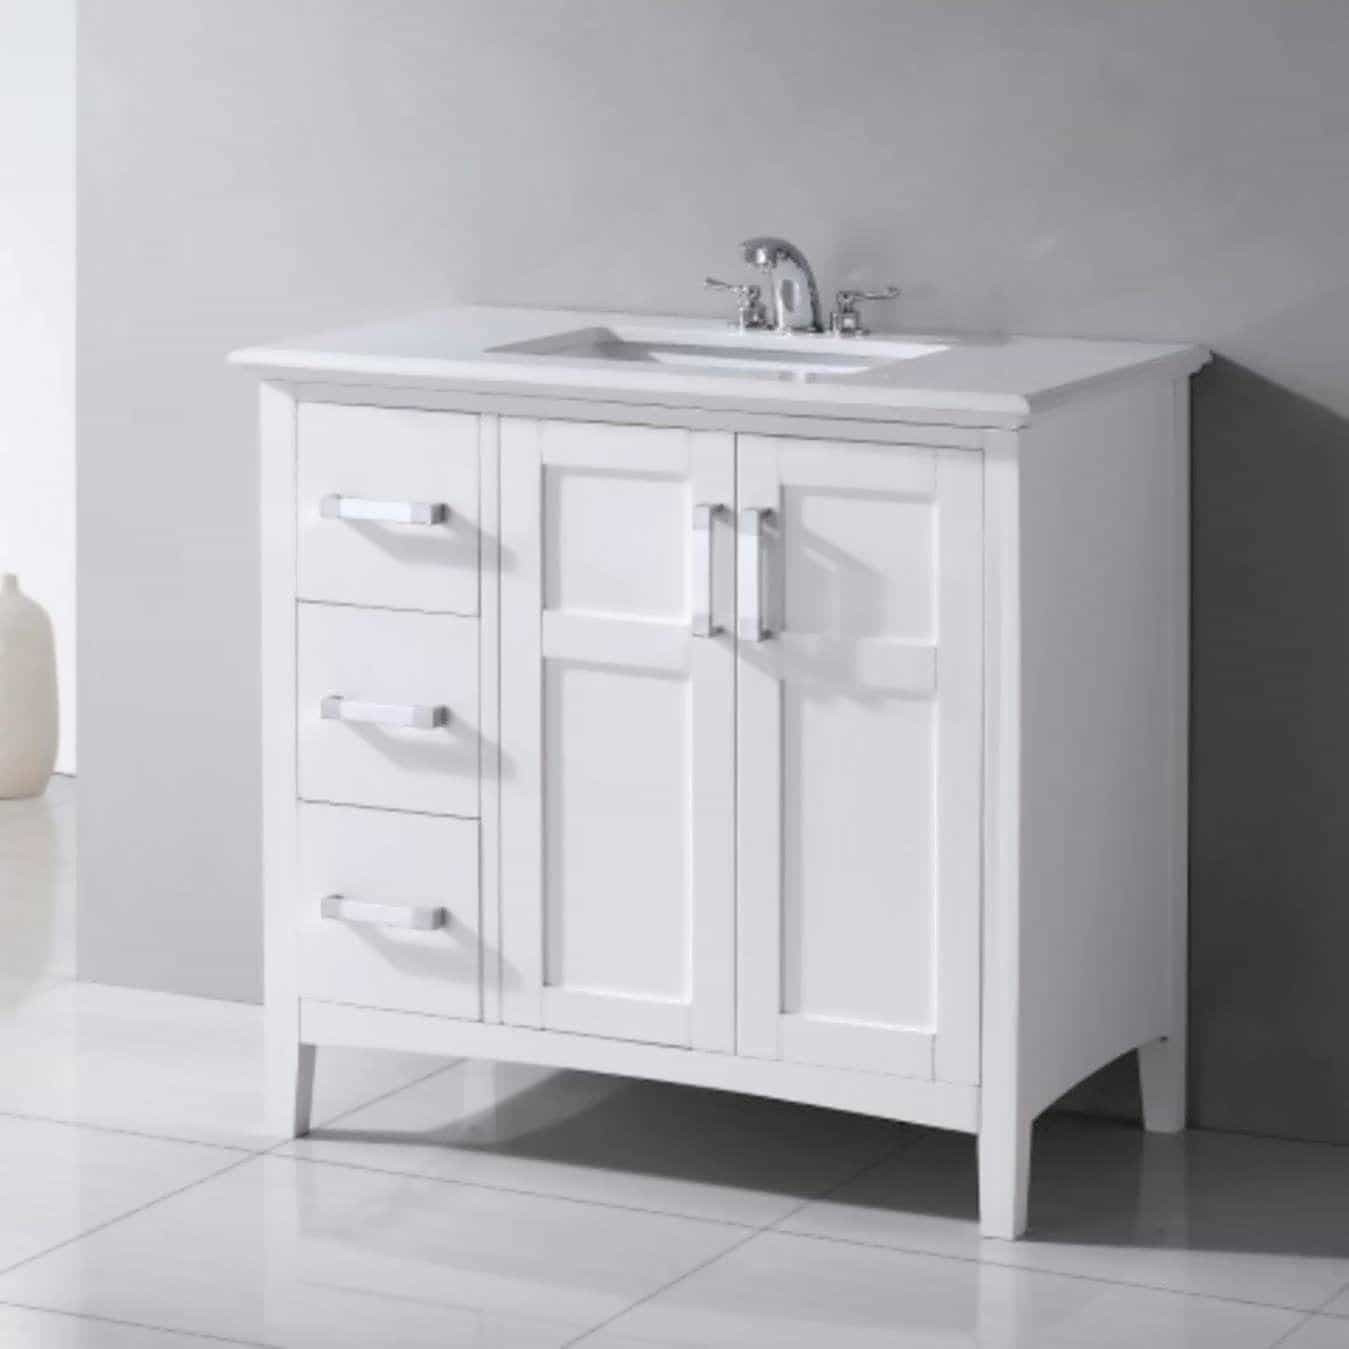 Best ideas about Bathroom Vanities Cheap . Save or Pin Cheap Bathroom Vanity in White Under $200 Cheap Bathroom Now.